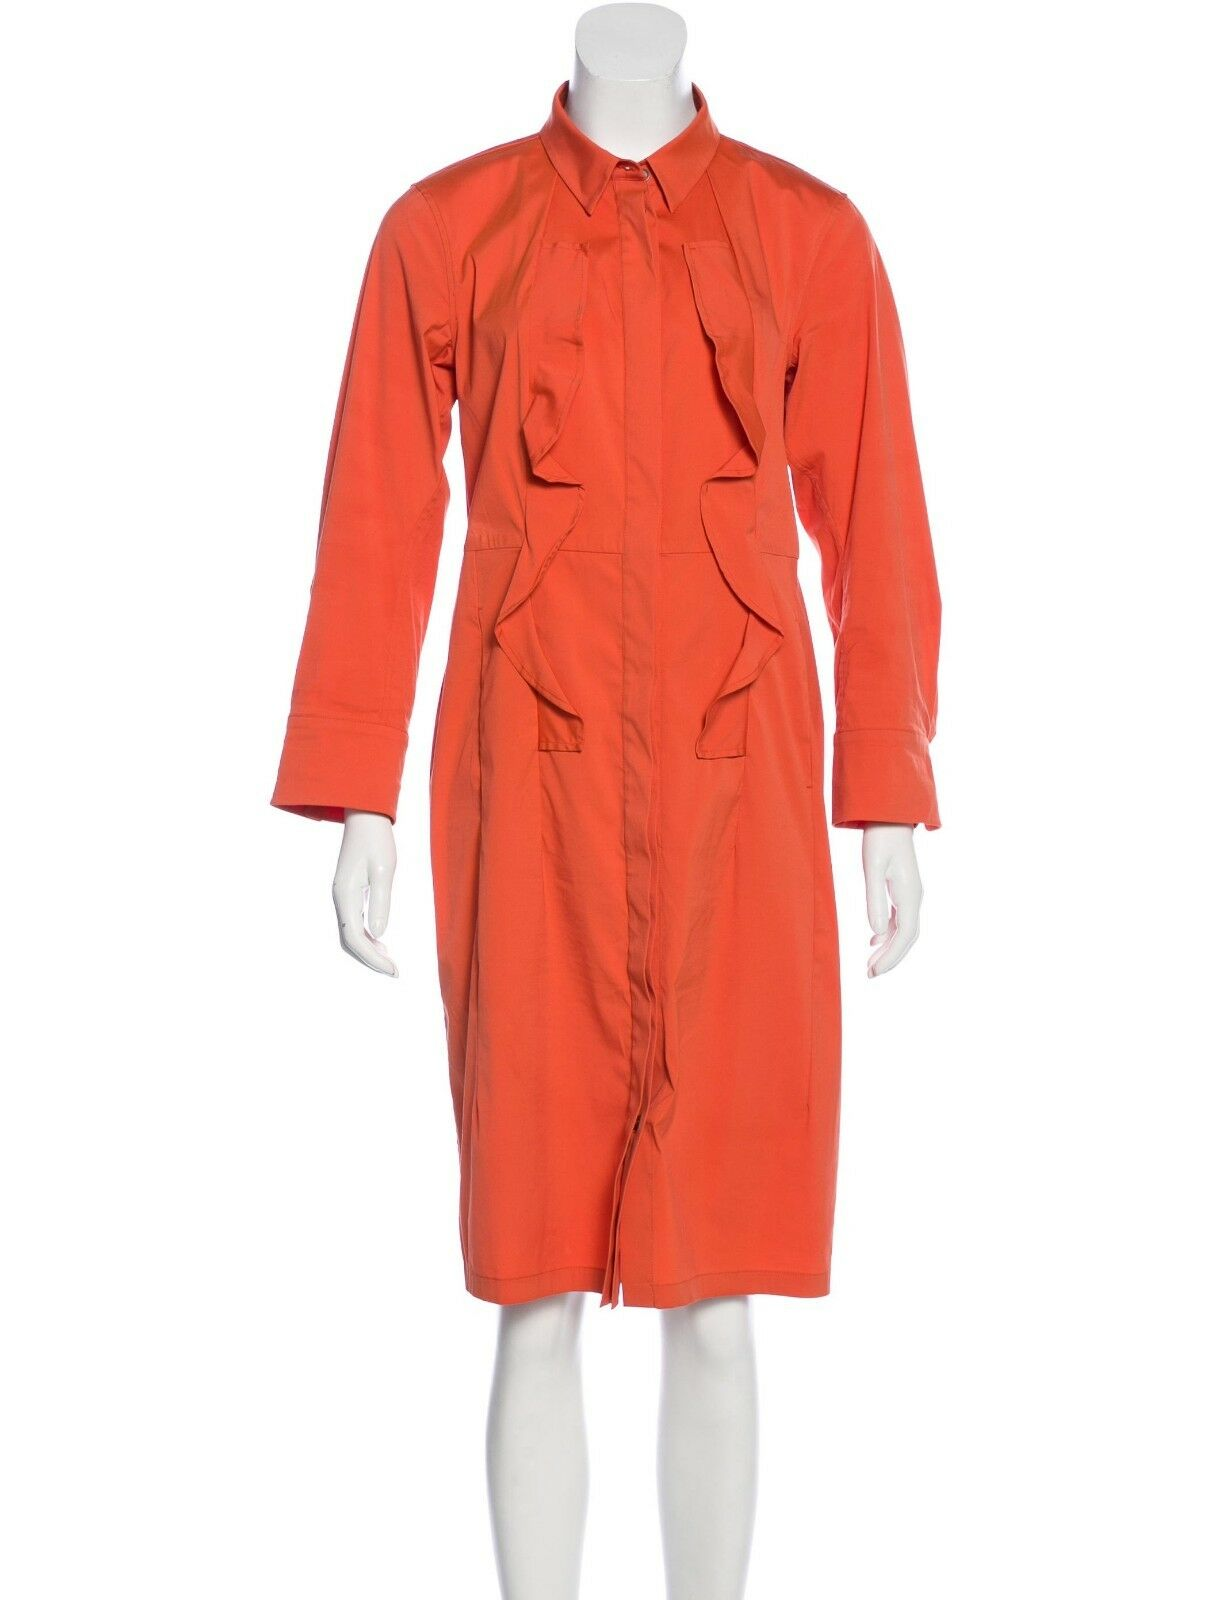 JIL SANDER orange SHIRT DRESS sz FR 42  US 10